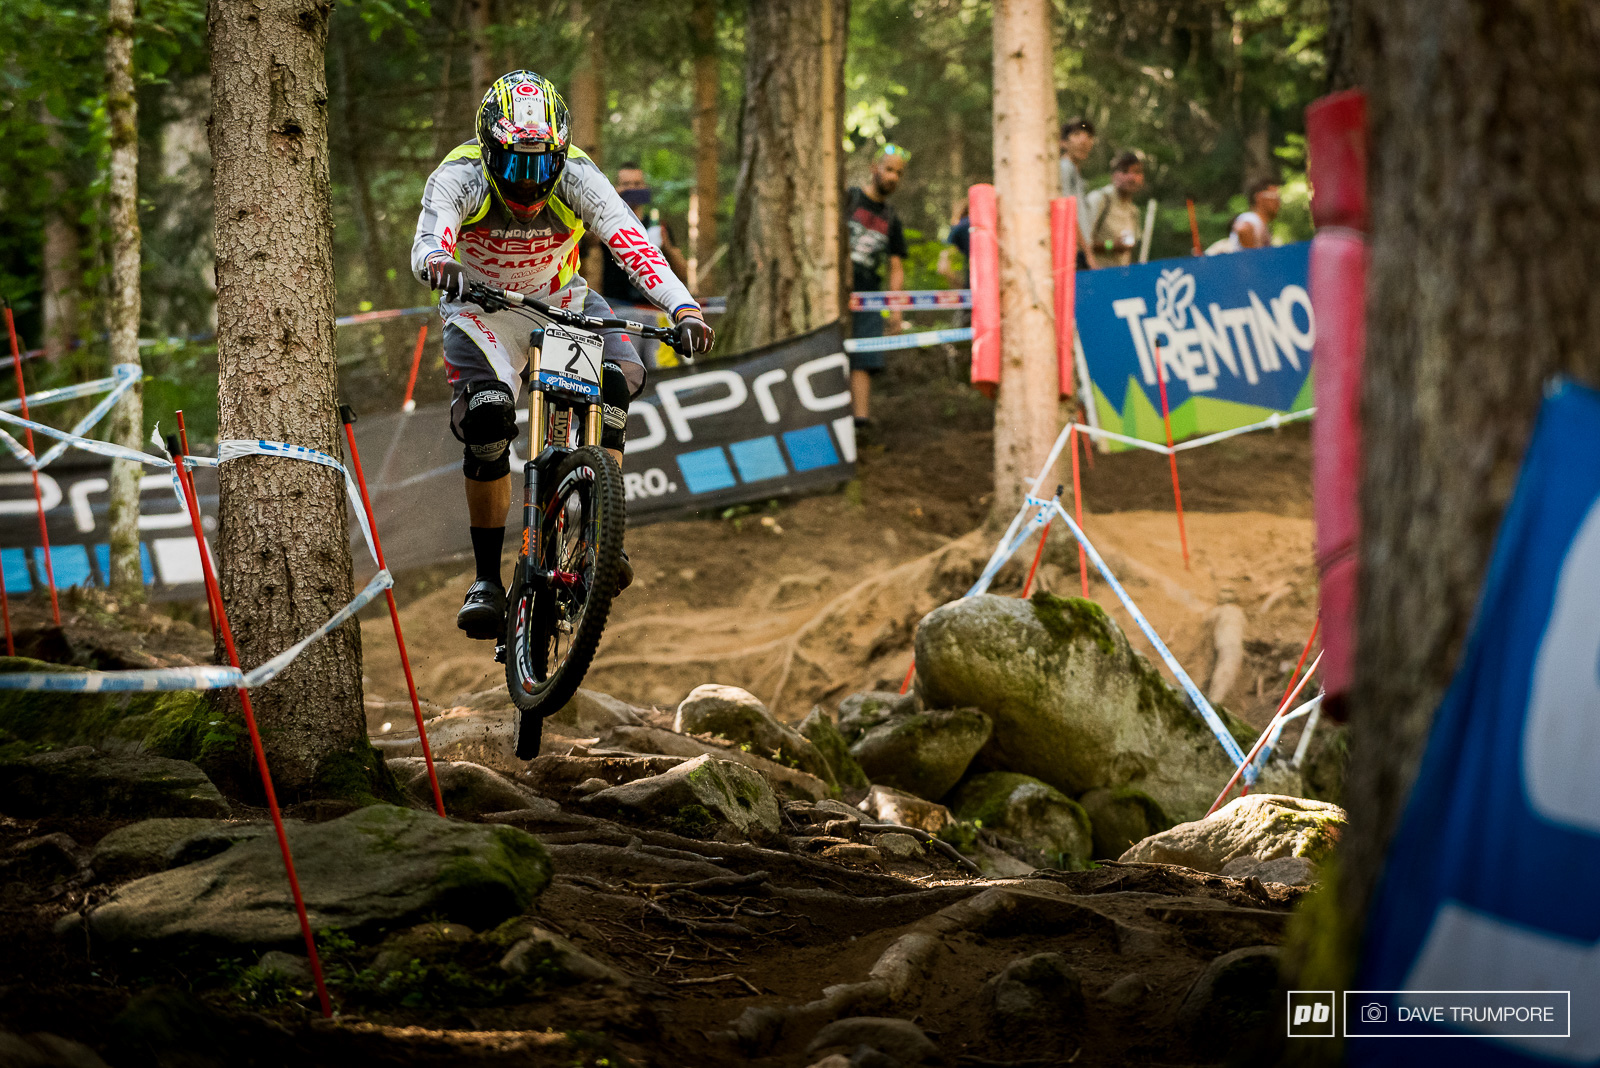 Greg Minnaar met a bit of misfortune on his run and would finish off the podium.